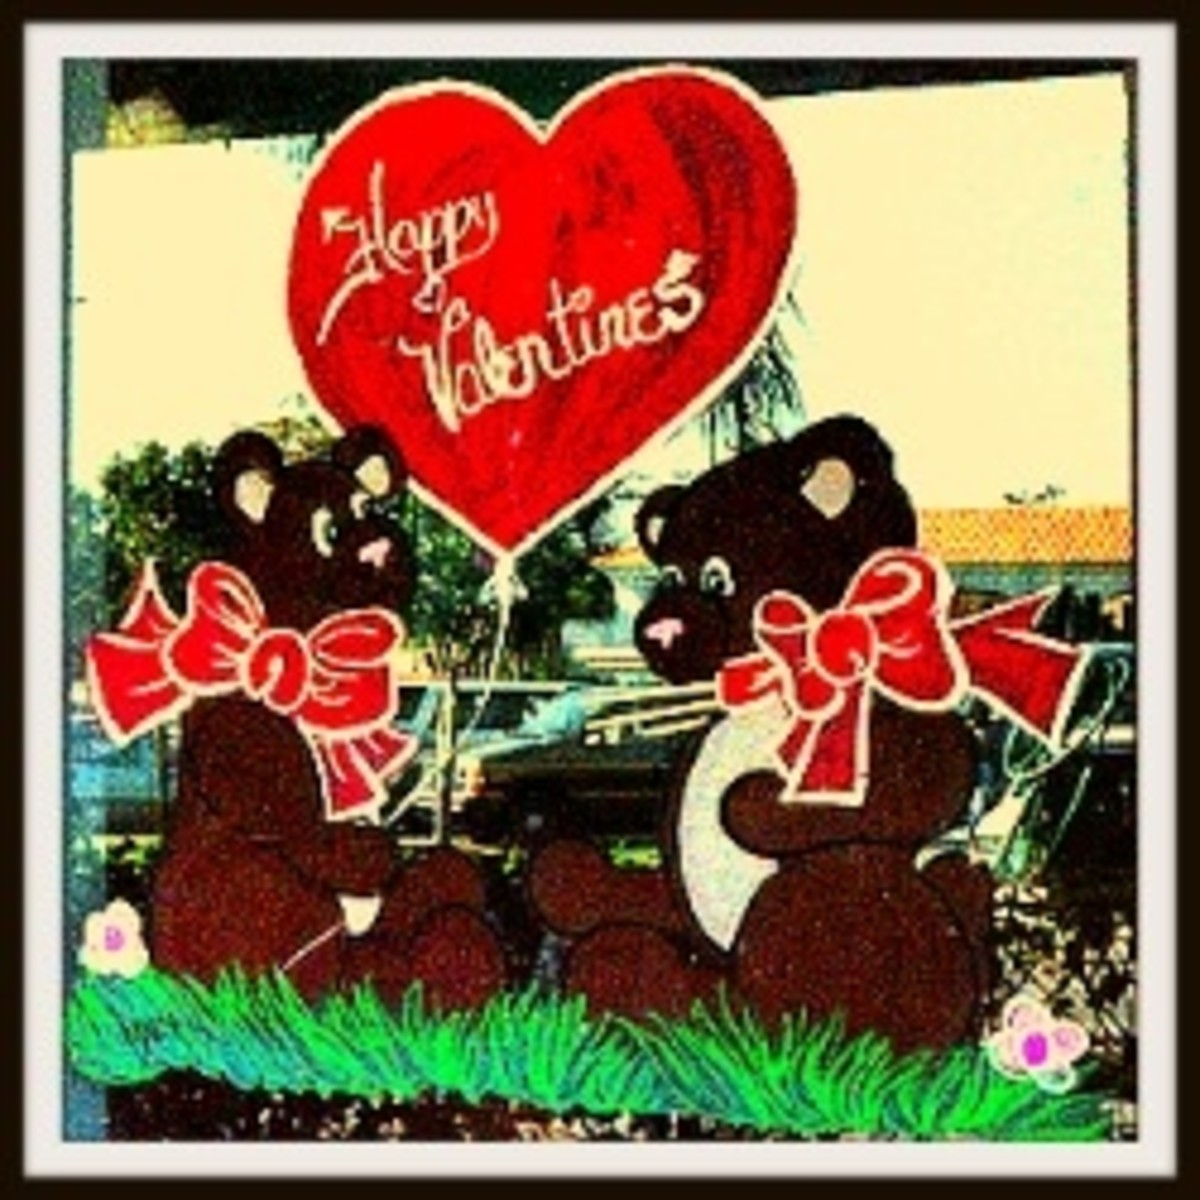 Paintings for Valentine's Day 1989. Image enhanced to improve viewing quality.